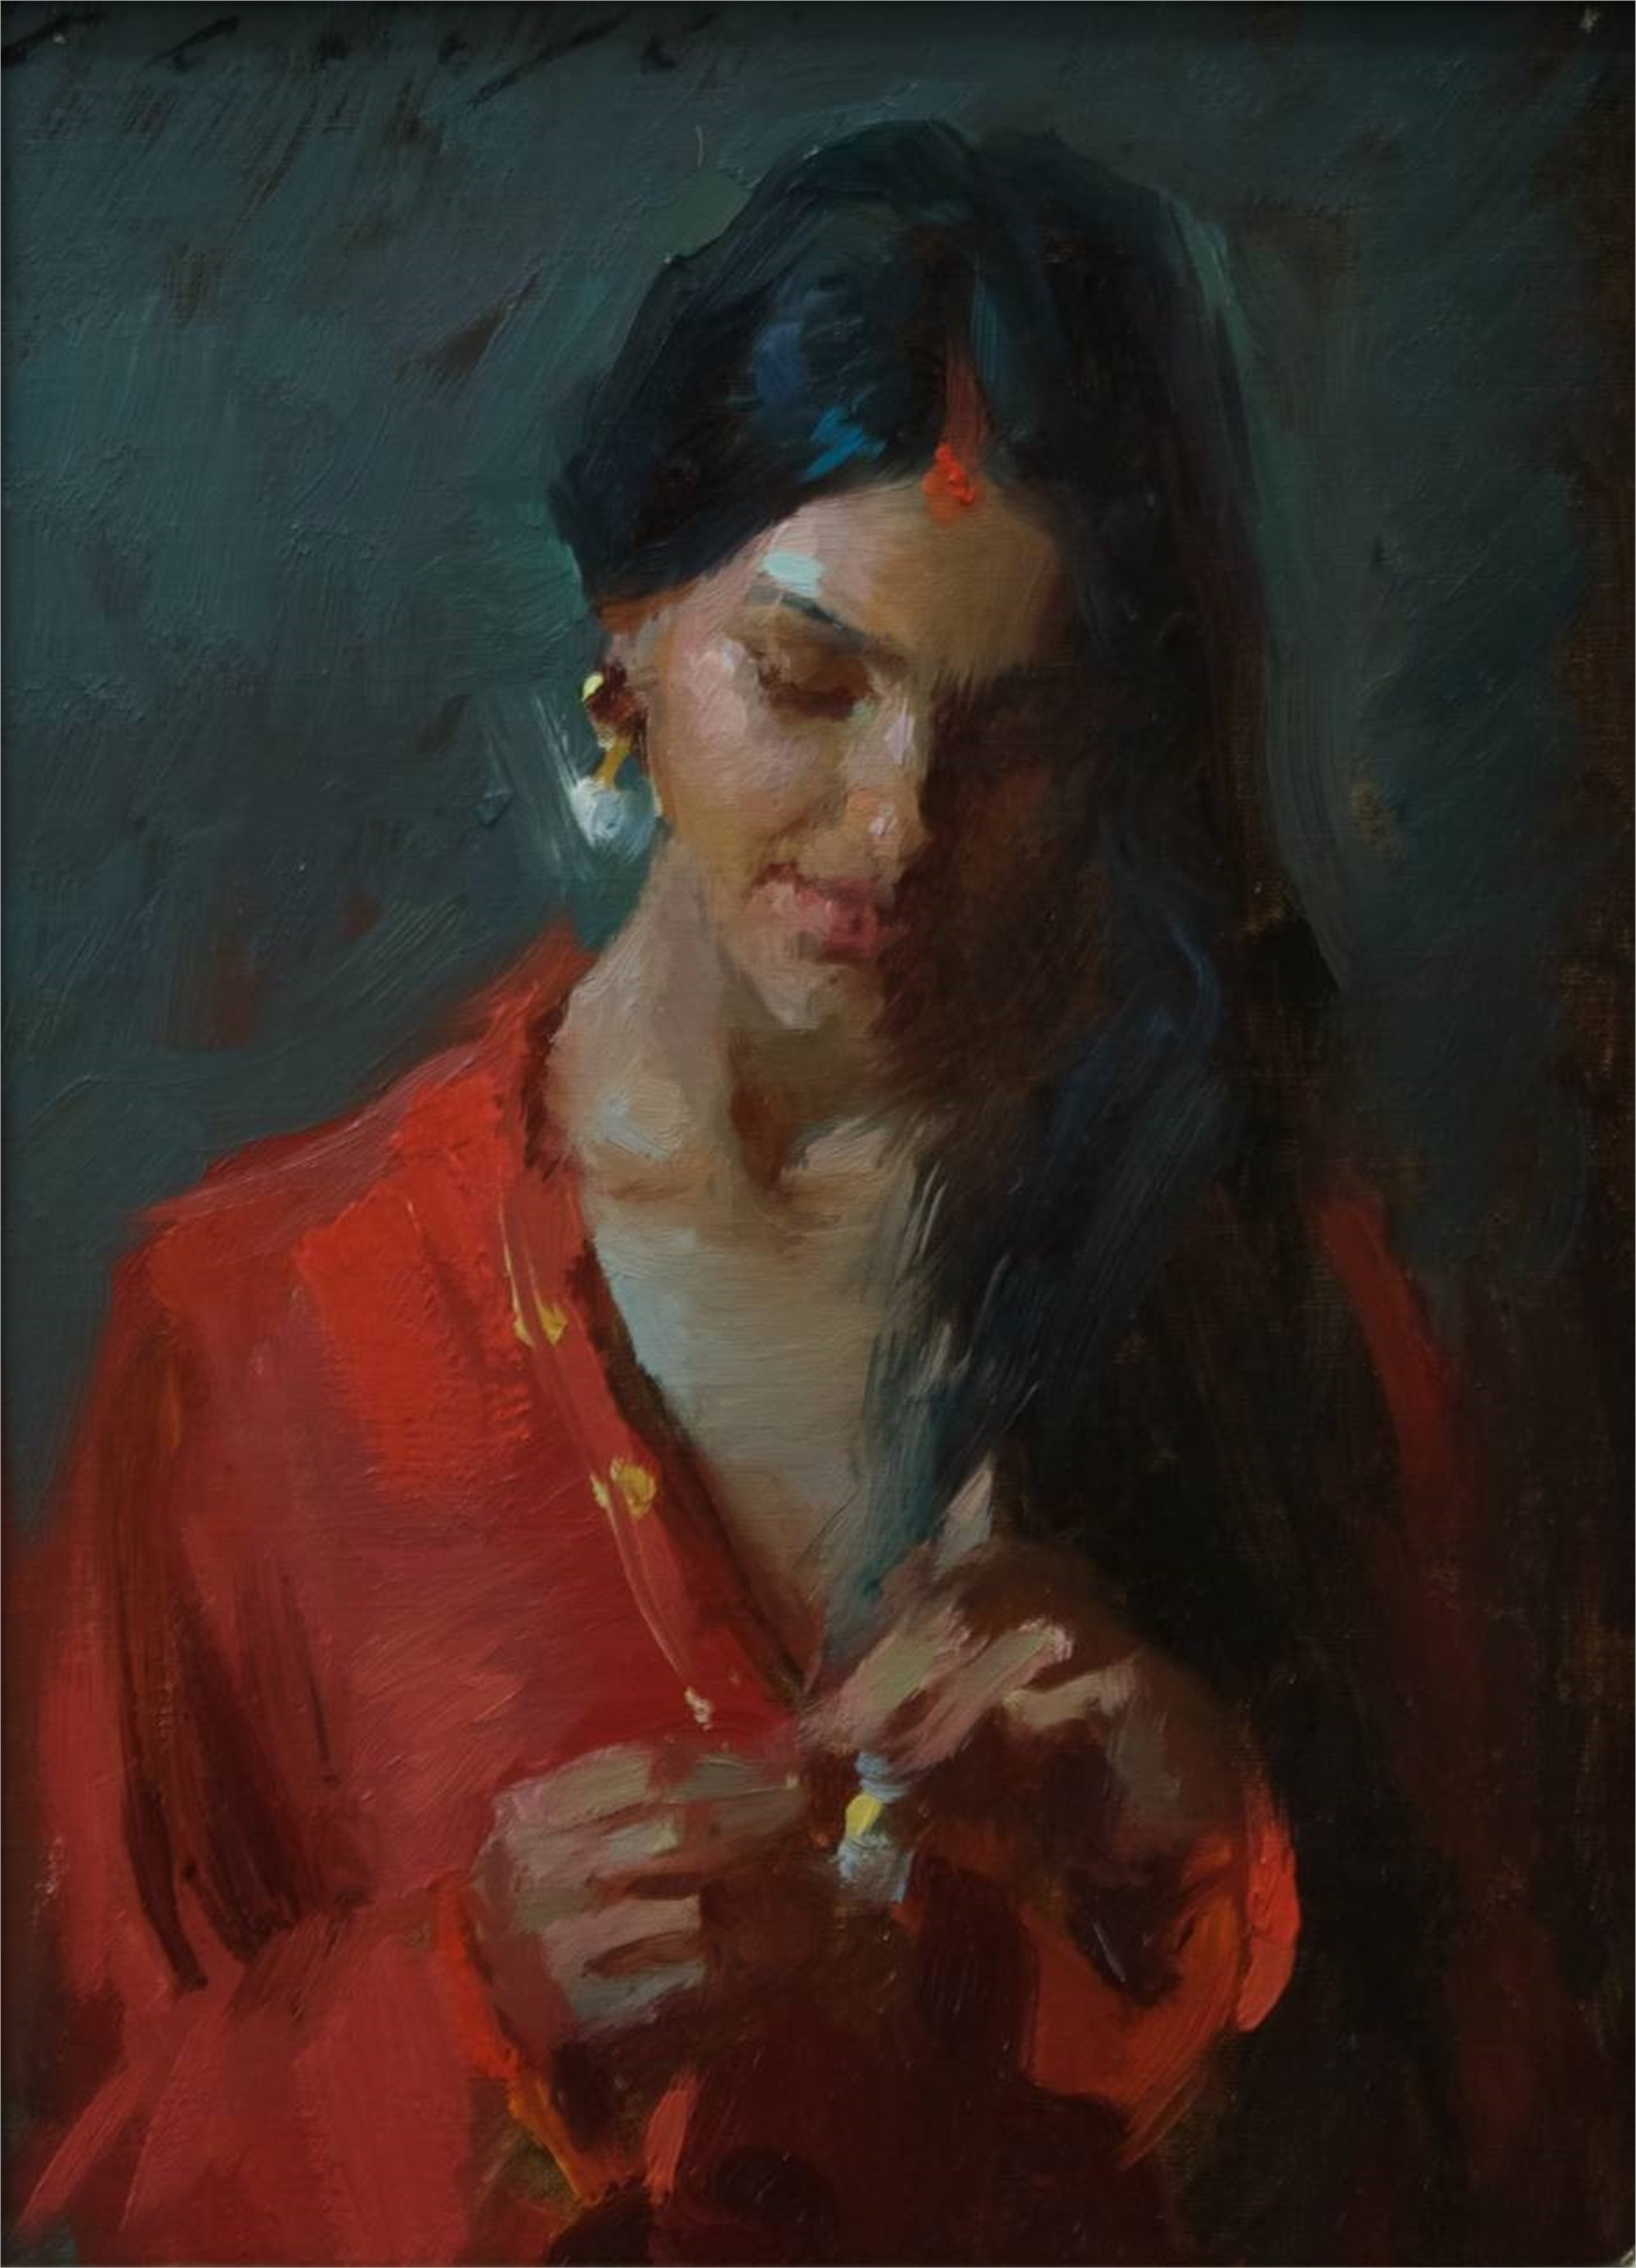 Vermillion Indian Beauty by Suchitra Bhosle